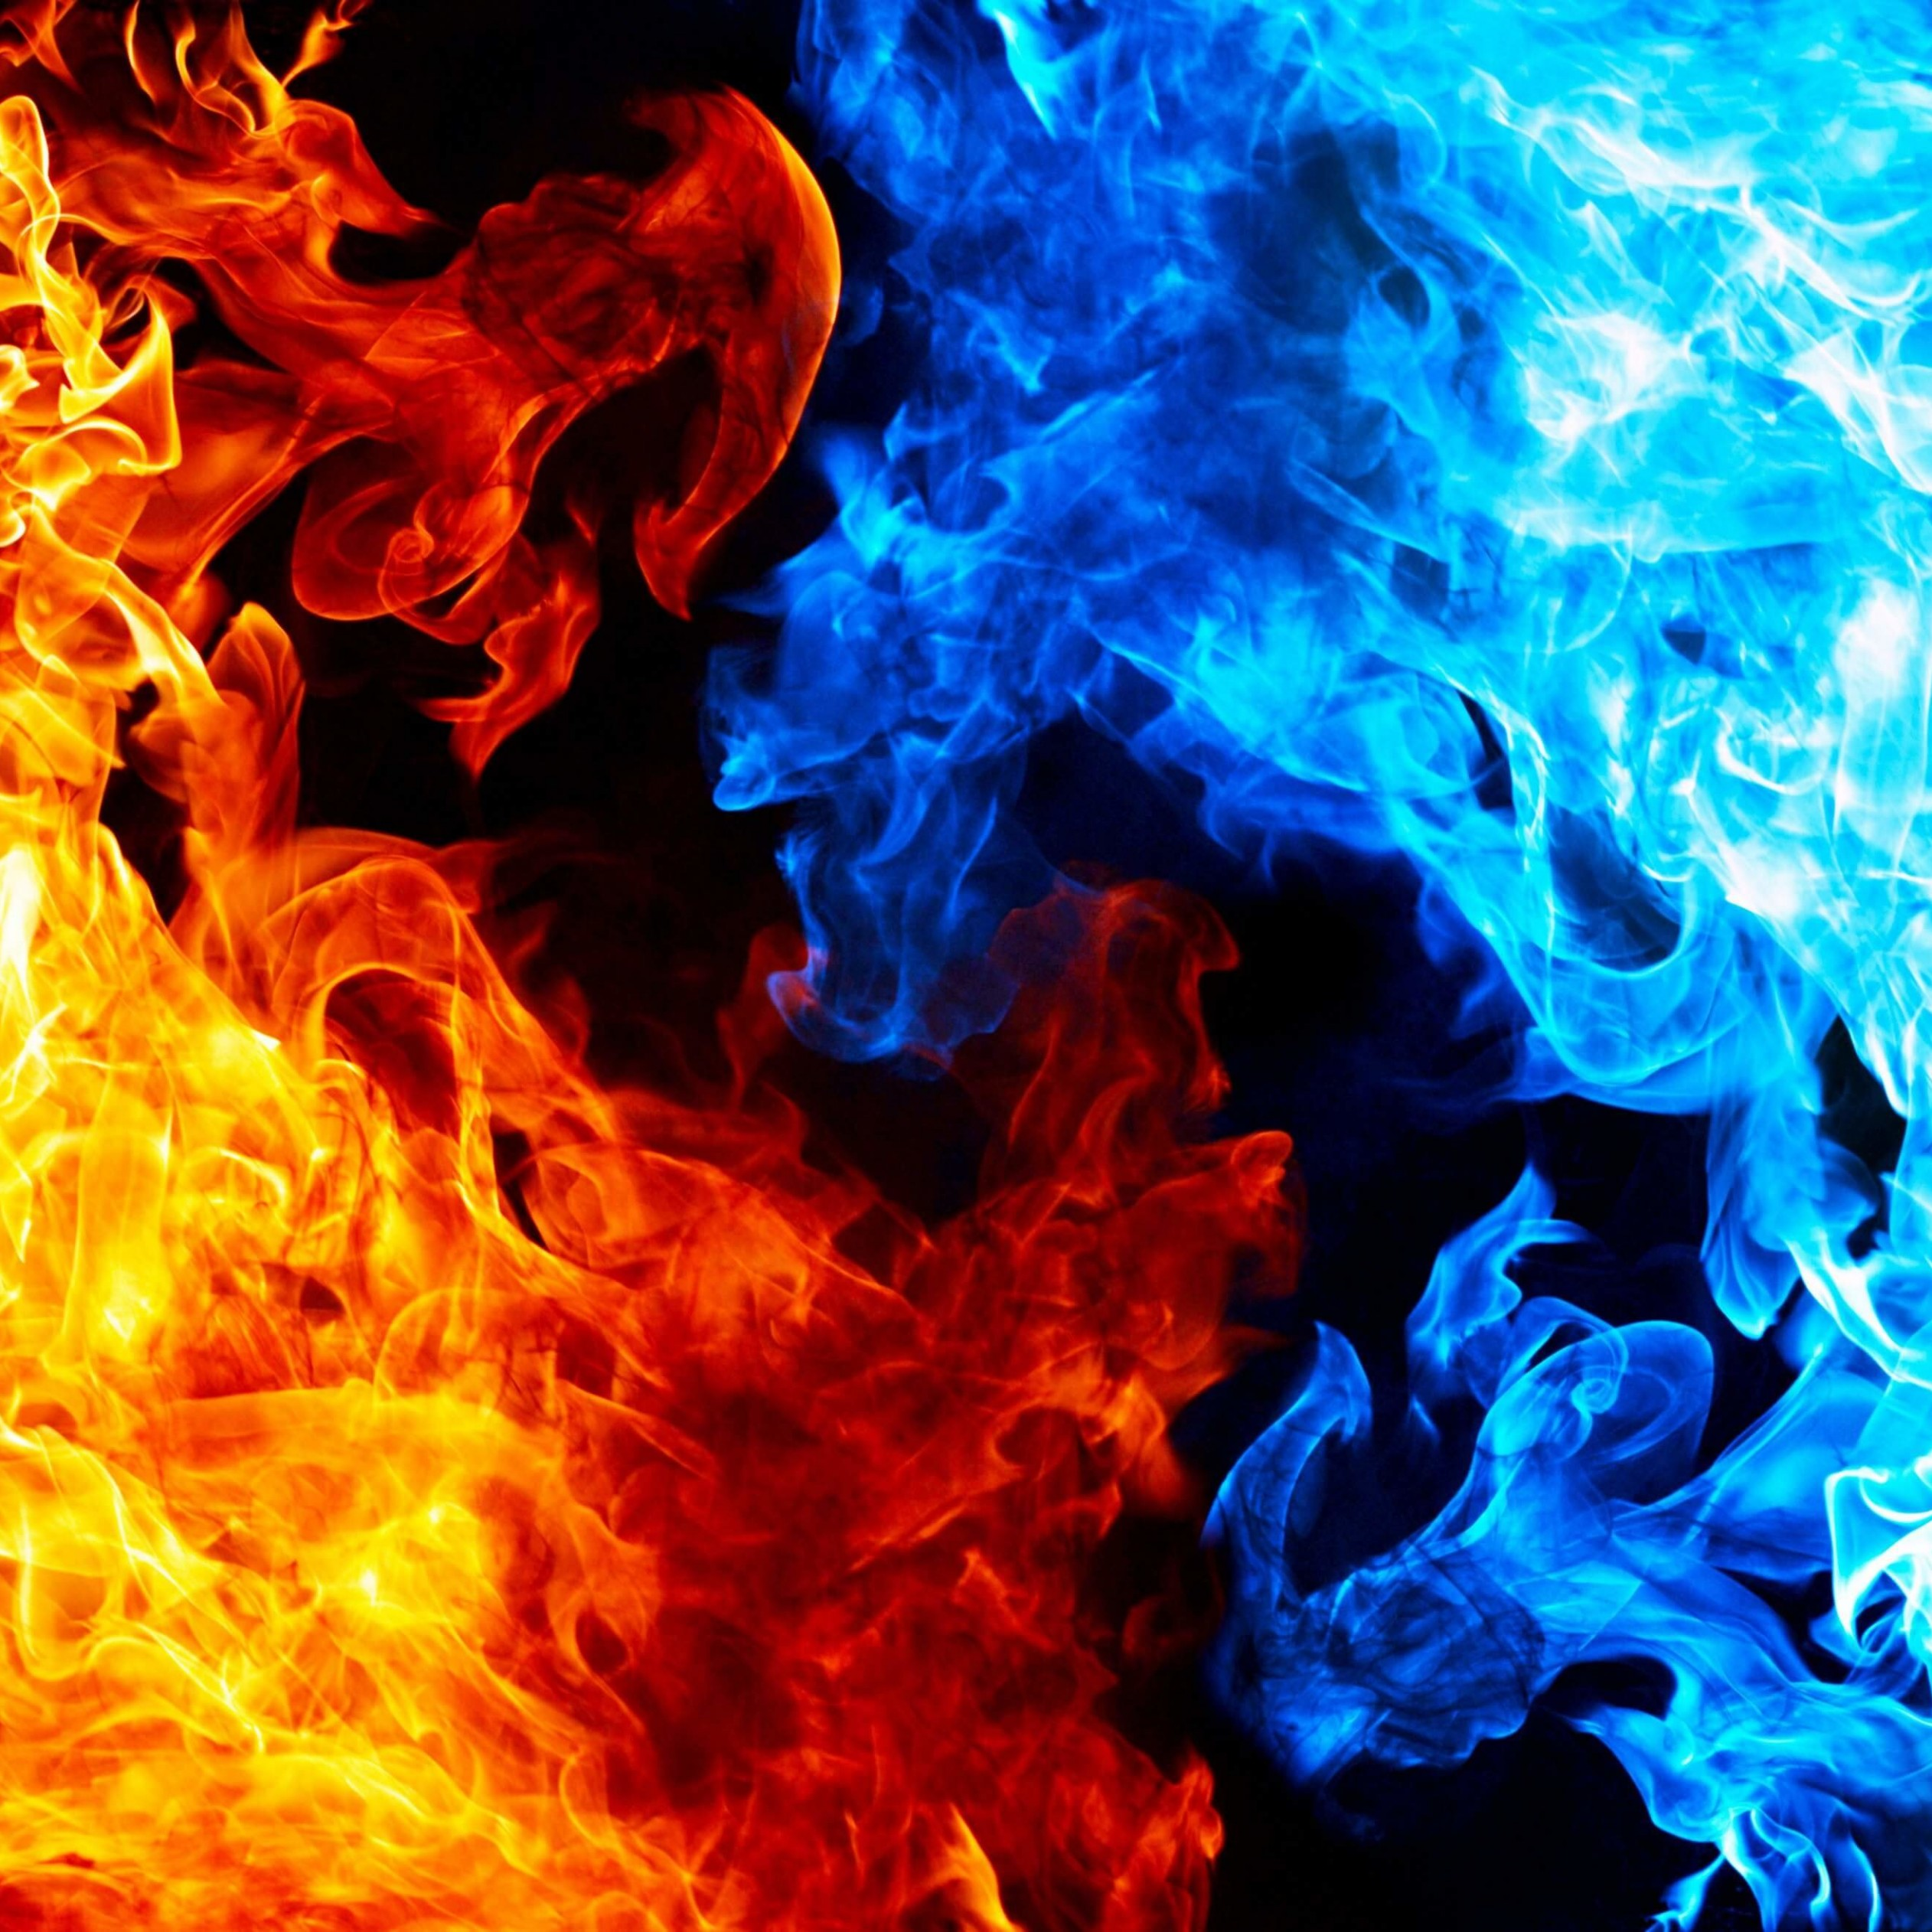 Blue And Red Fire Wallpaper for Apple iPad mini 2